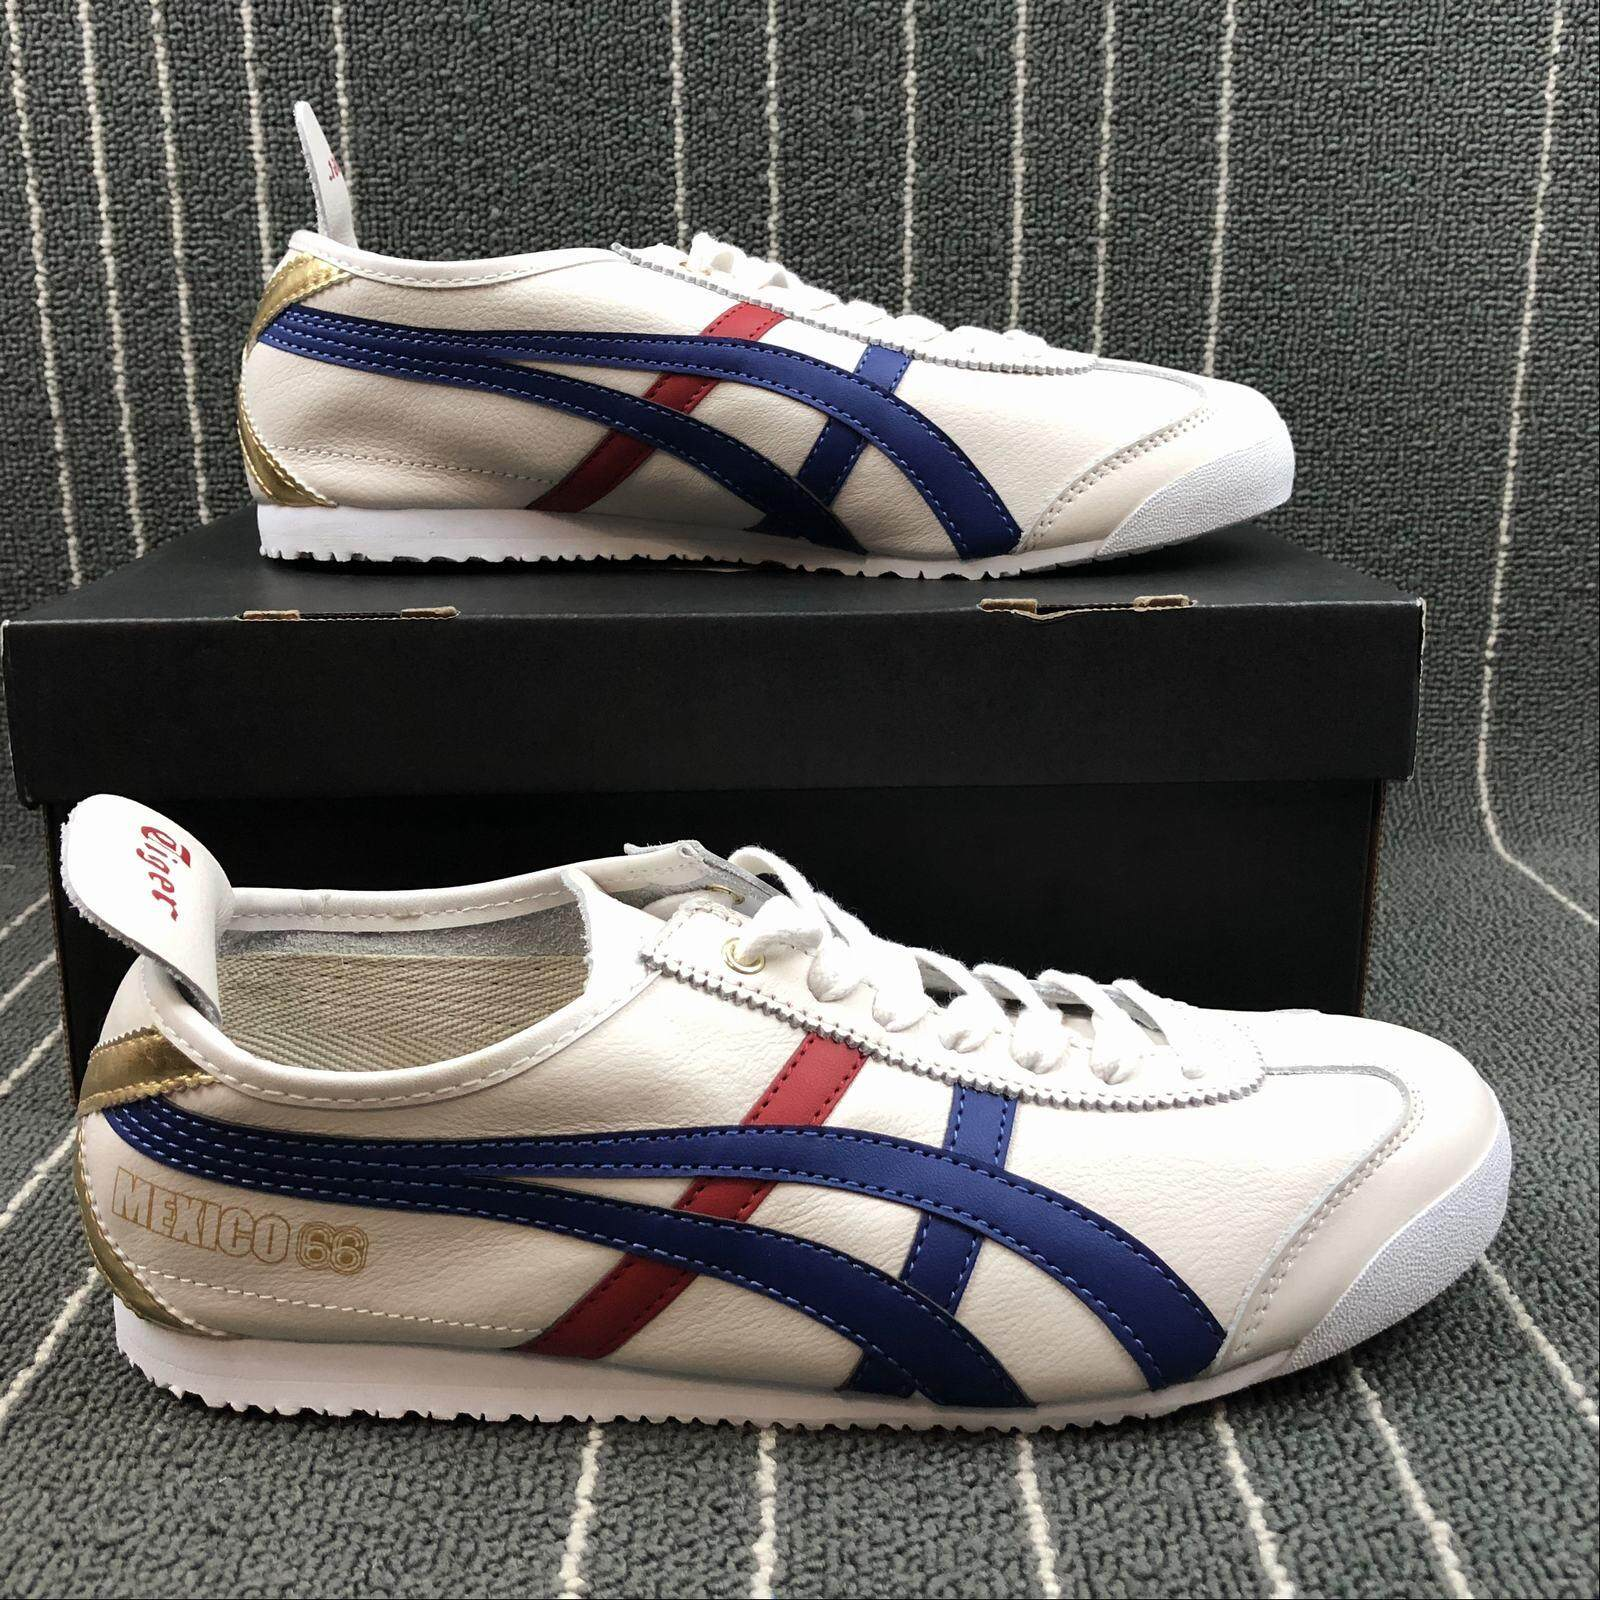 39a15960f22 Onitsuka Tiger Sports Shoes for the Best Prices in Malaysia